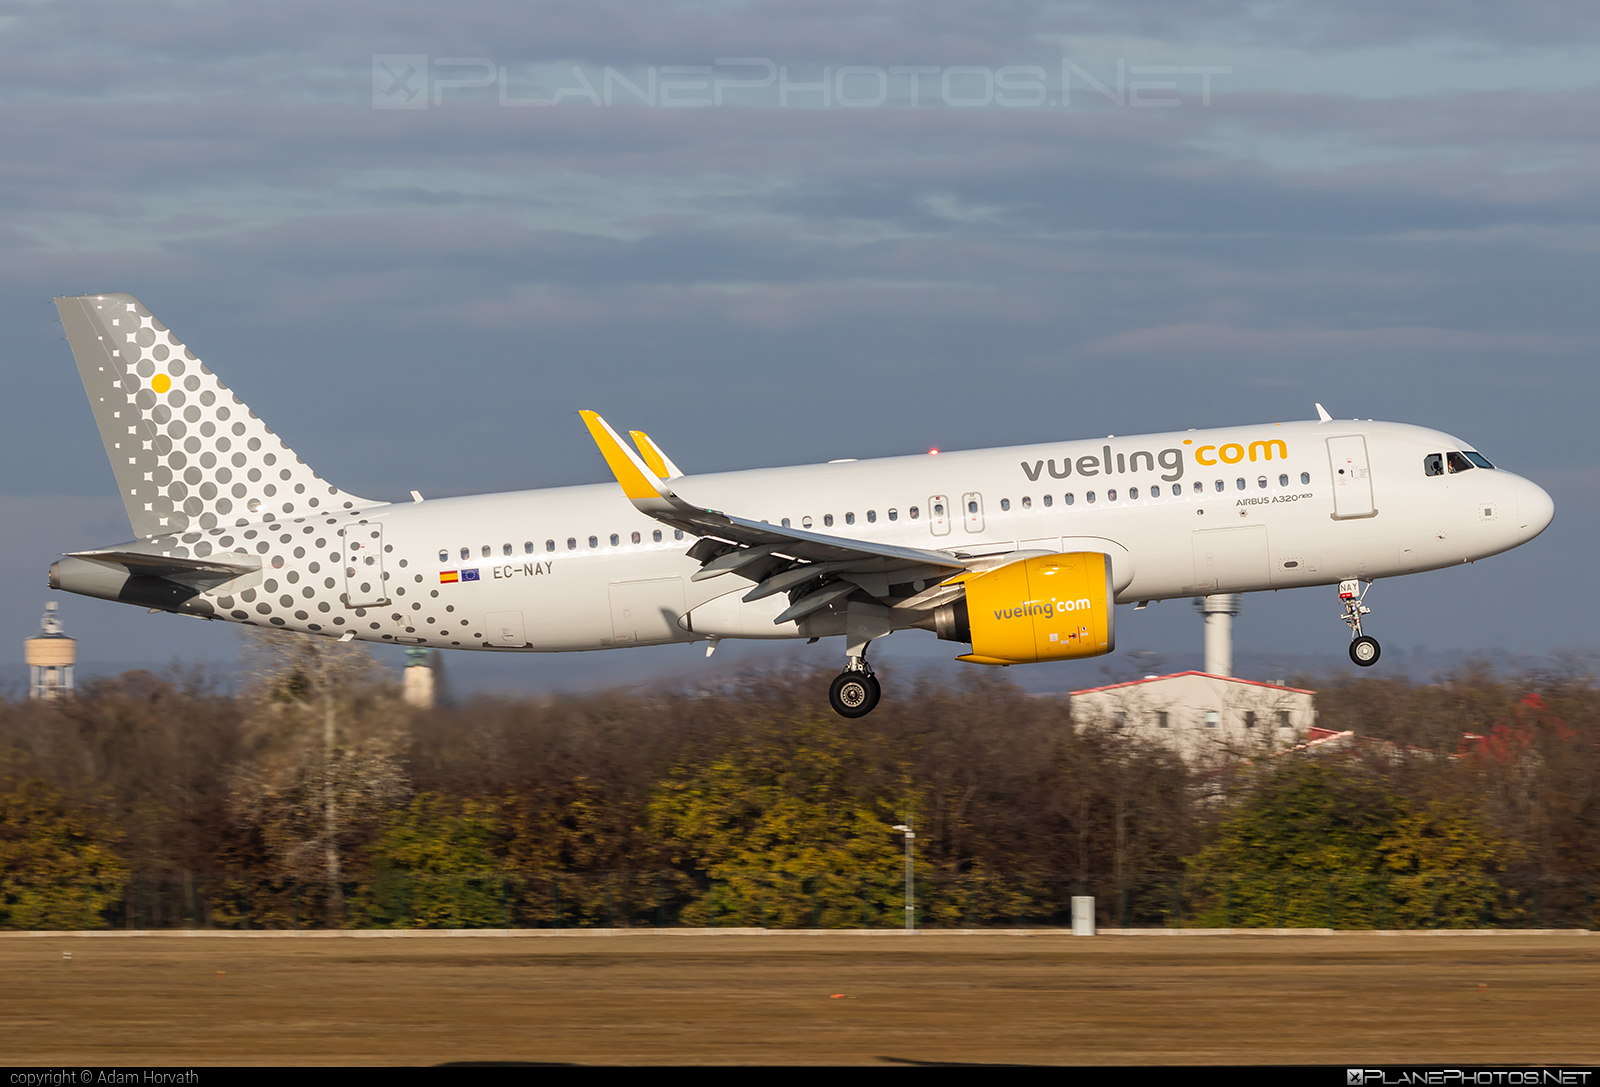 Airbus A320-271N - EC-NAY operated by Vueling Airlines #a320 #a320family #a320neo #airbus #airbus320 #vueling #vuelingairlines